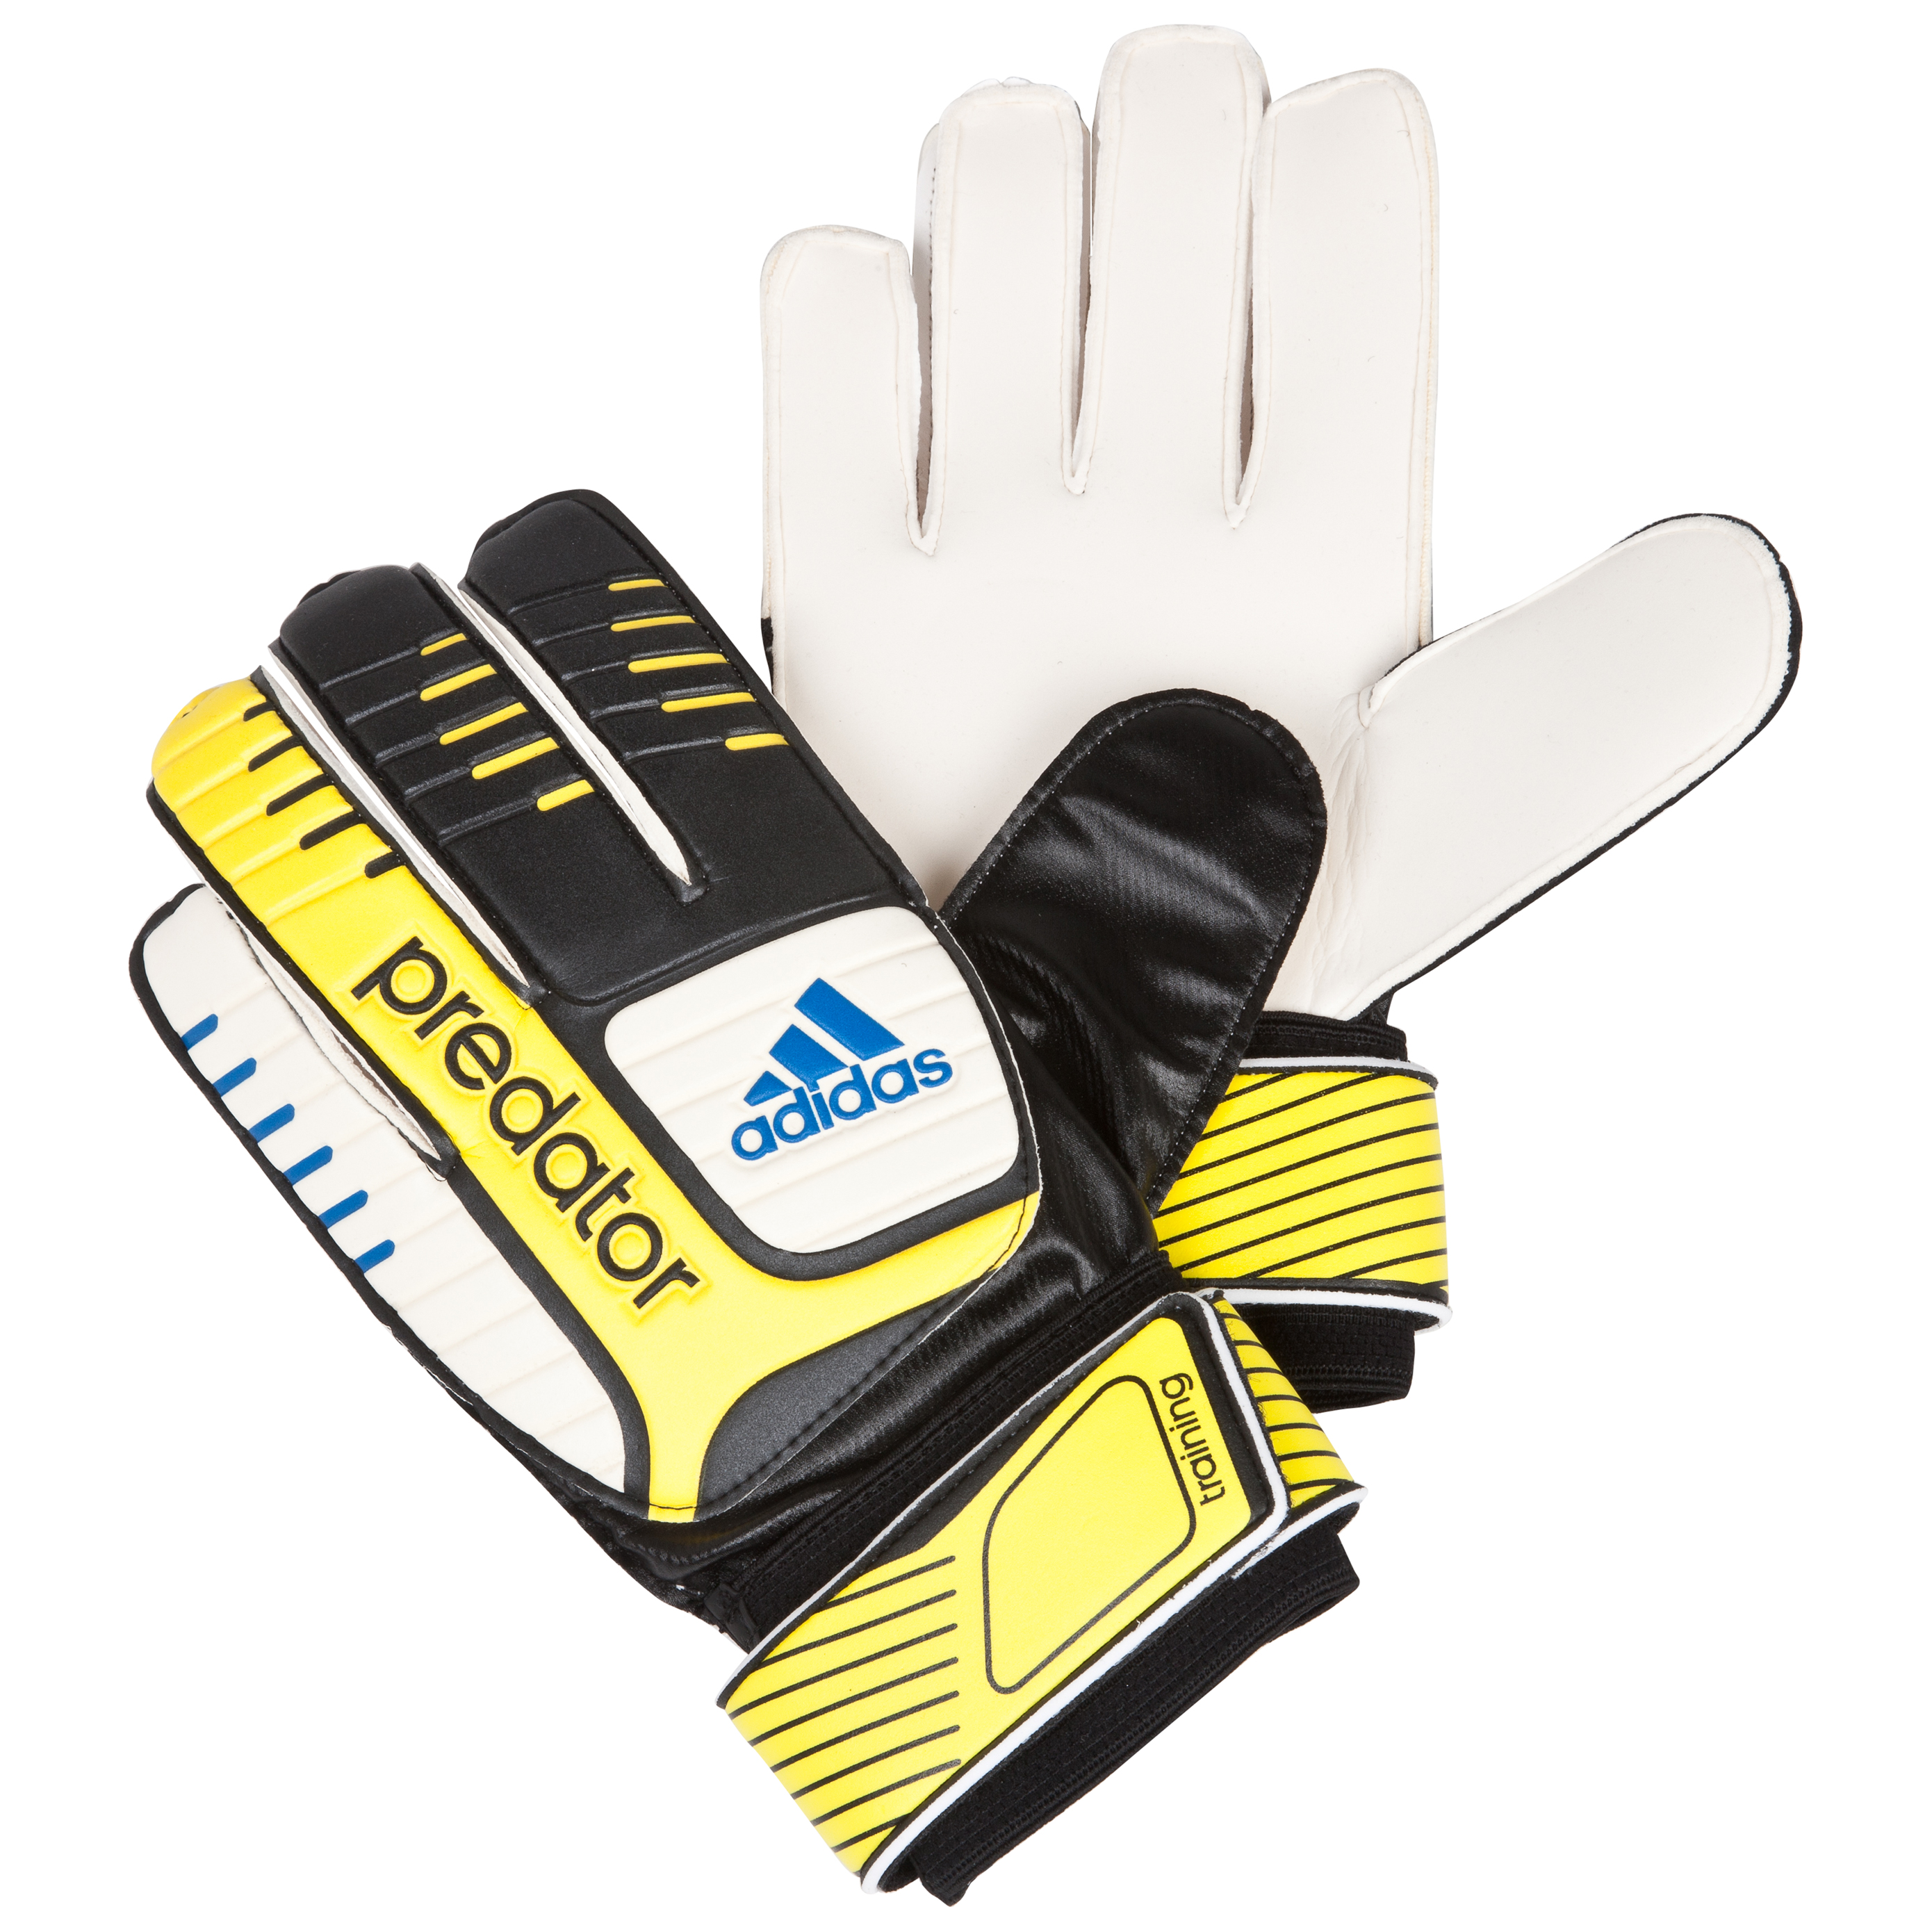 Guantes portero Pred Training adidas - Negro/blanco/amarillo/azul